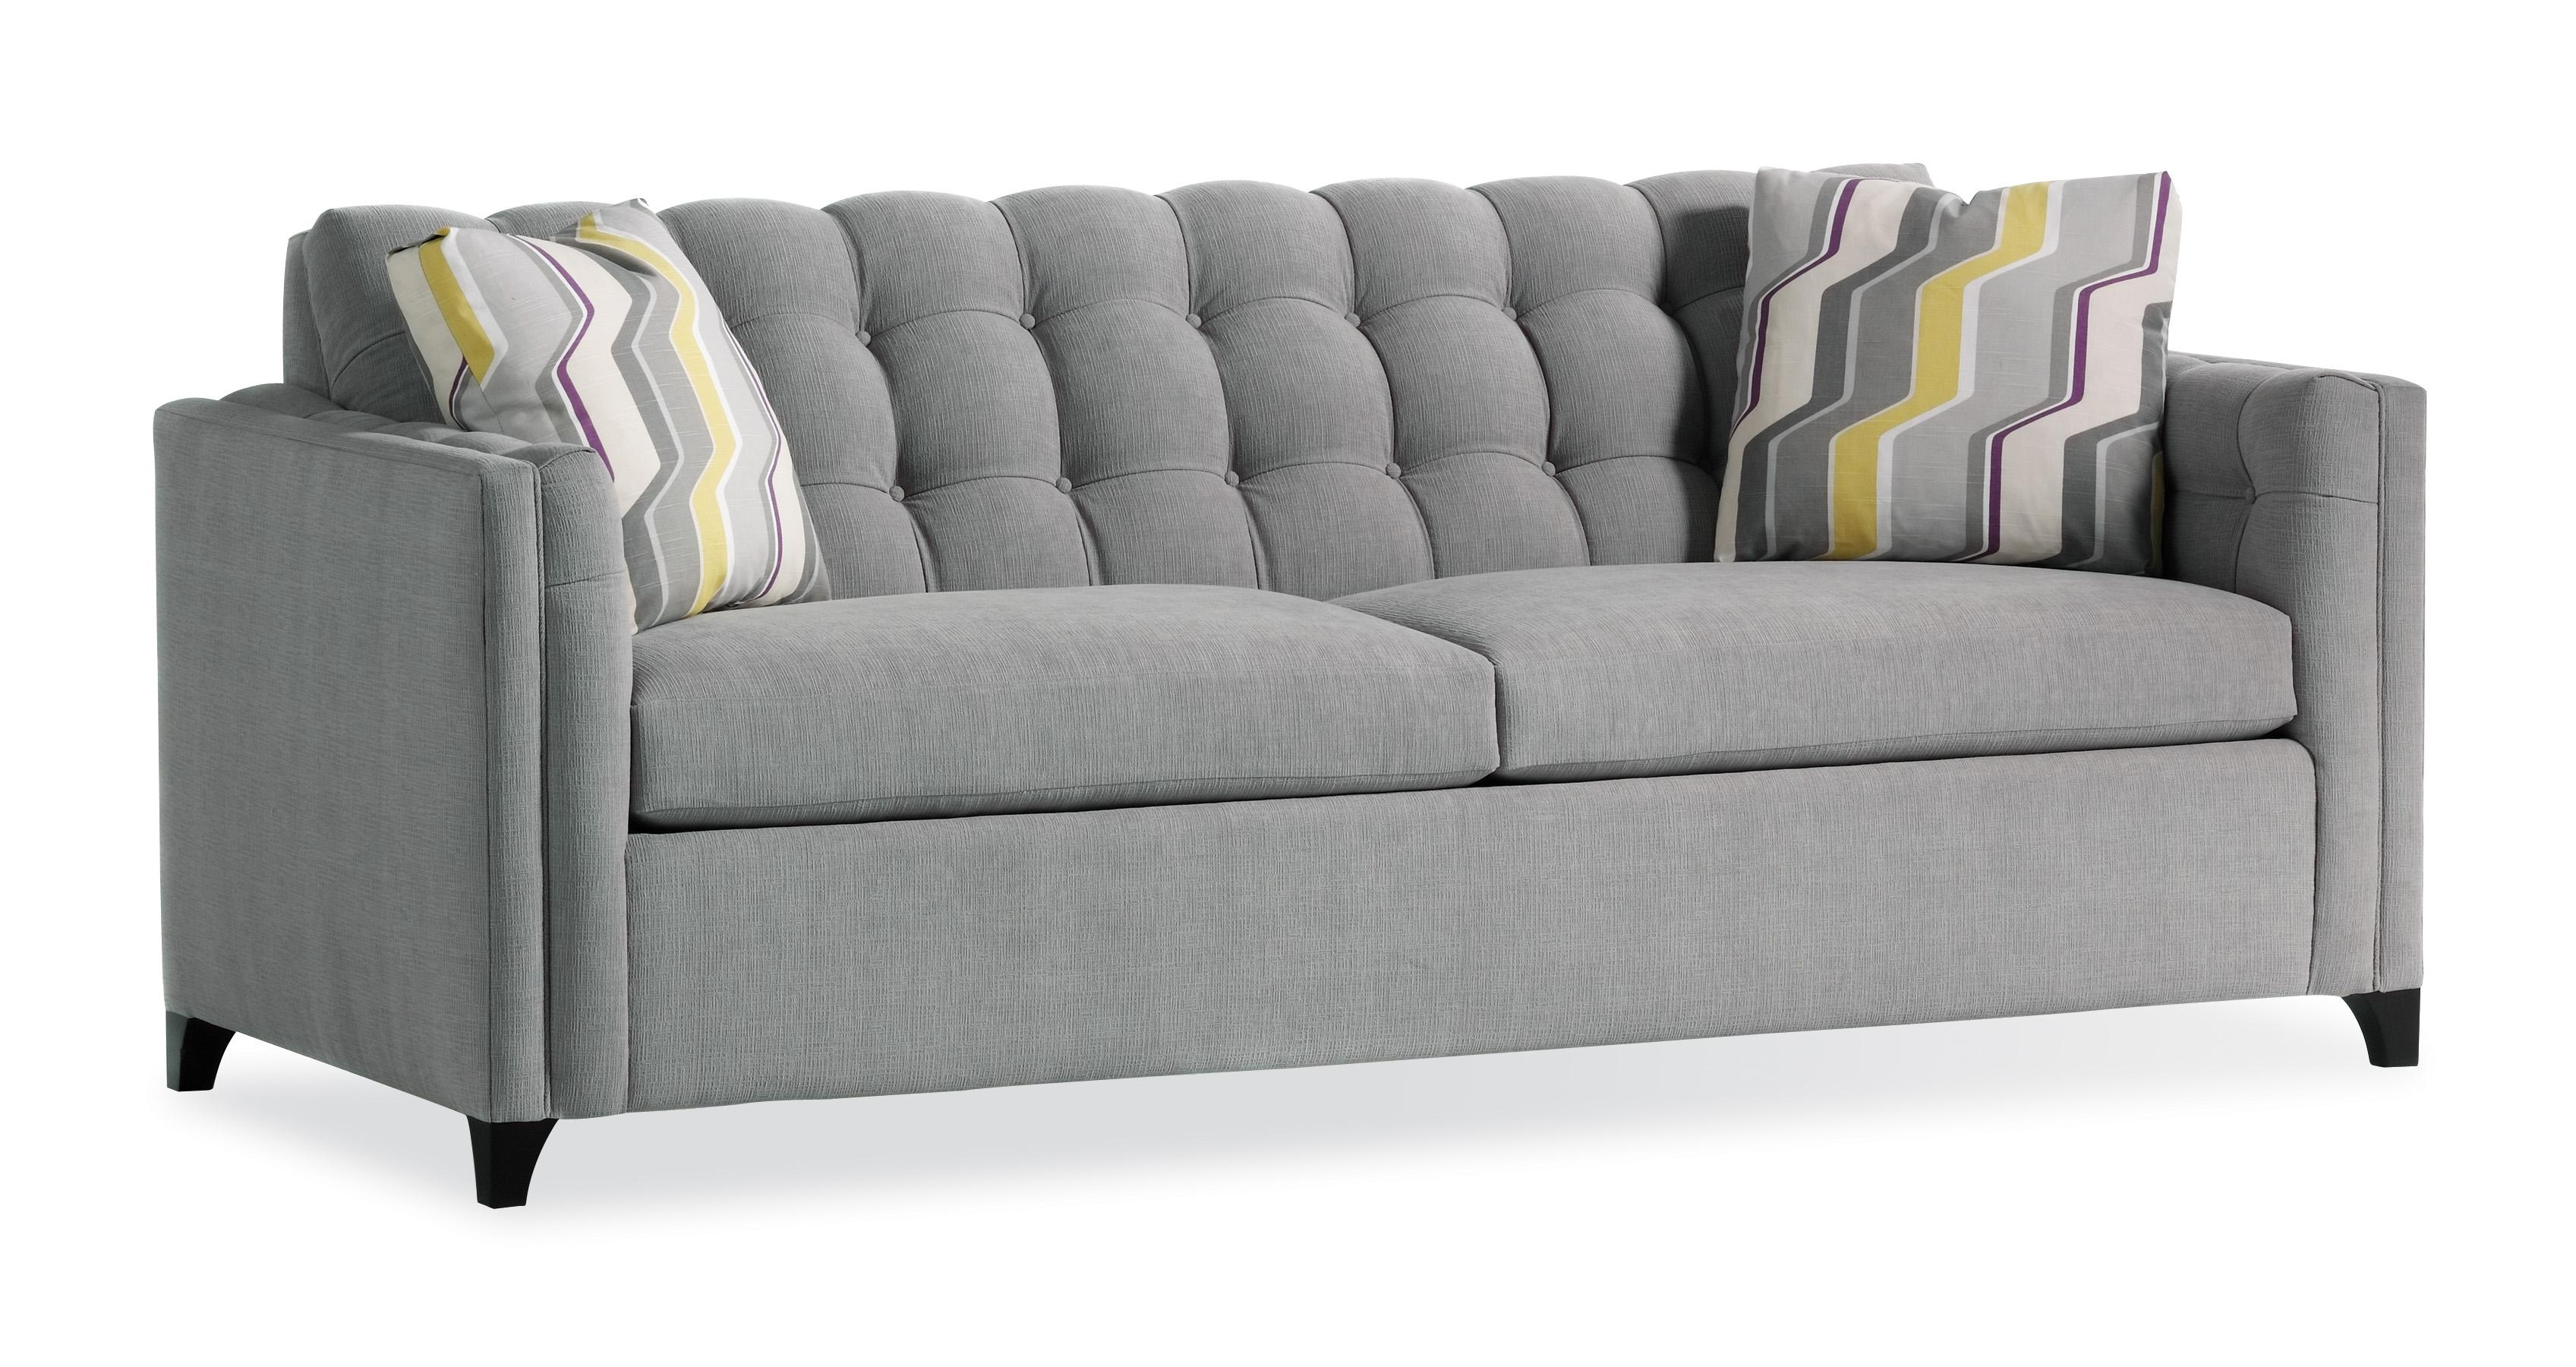 Sofas Center : Tufted Sleeper Sofa Stunning Photo Design Urban With Regard To Tufted Sleeper Sofas (Image 19 of 20)